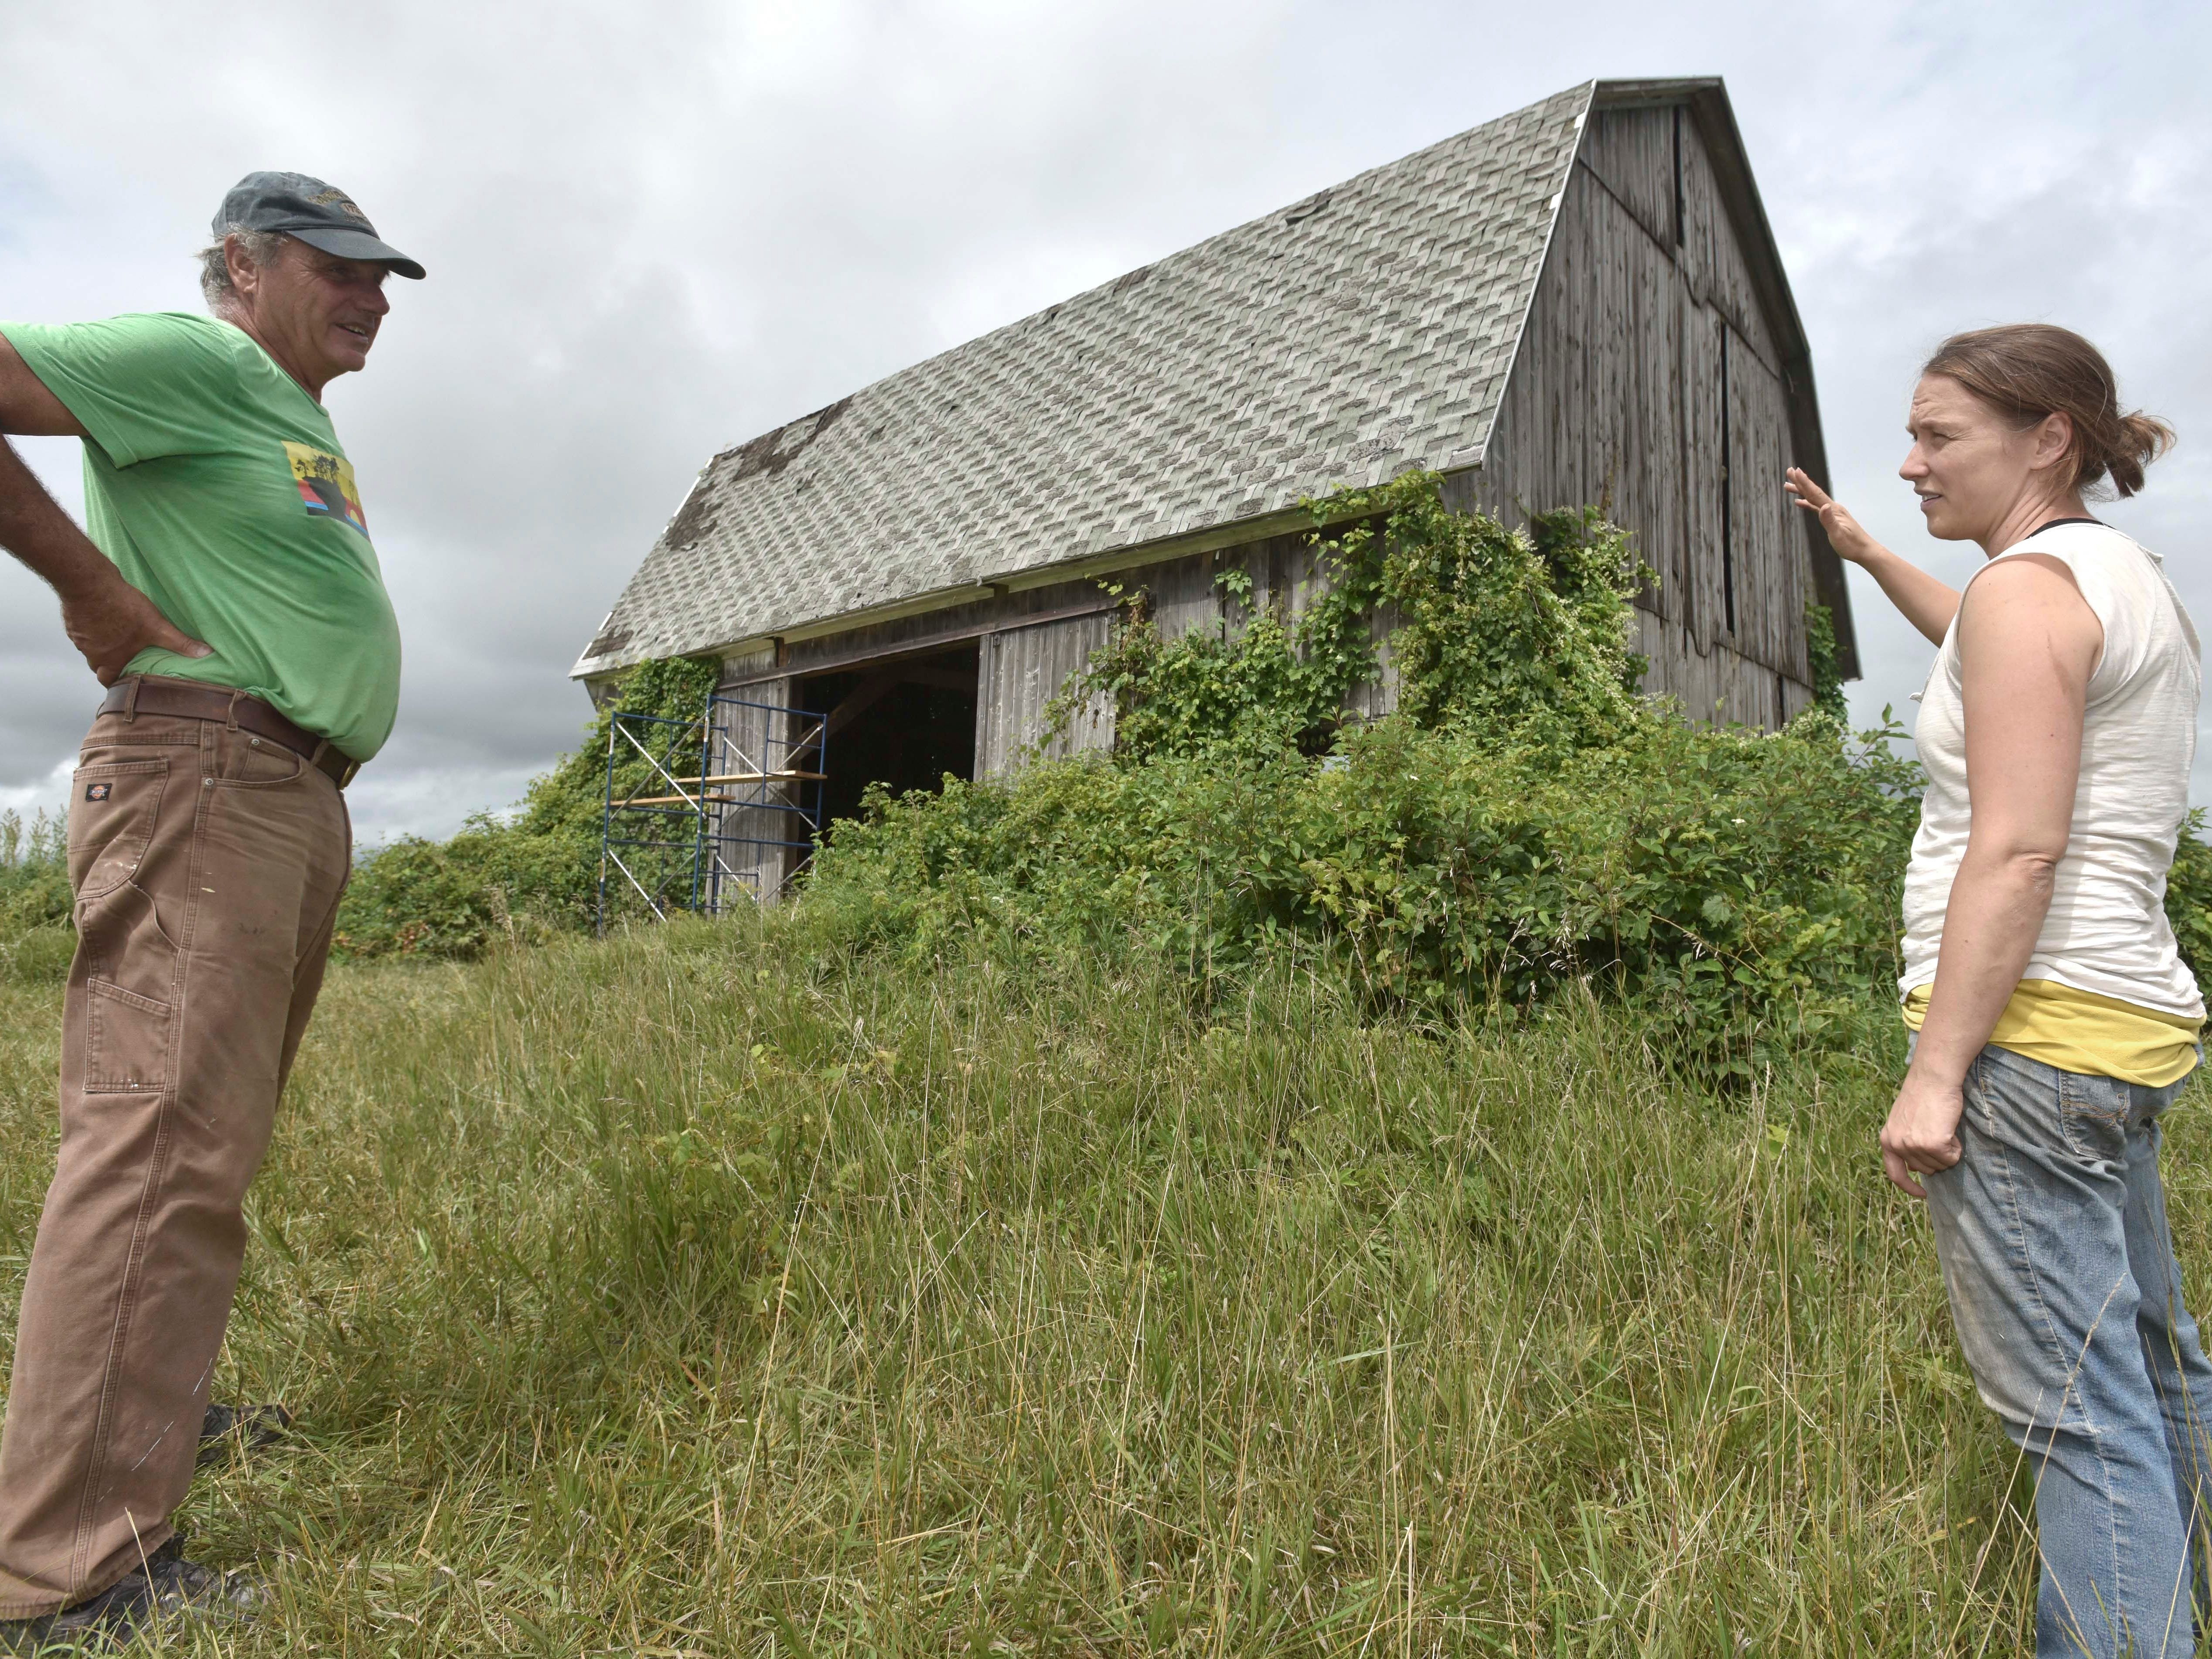 Barn artist Catie Newell of Detroit talks with volunteer laborer Terry Boyle, 71, of Port Austin outside the barn as they plan their next move.